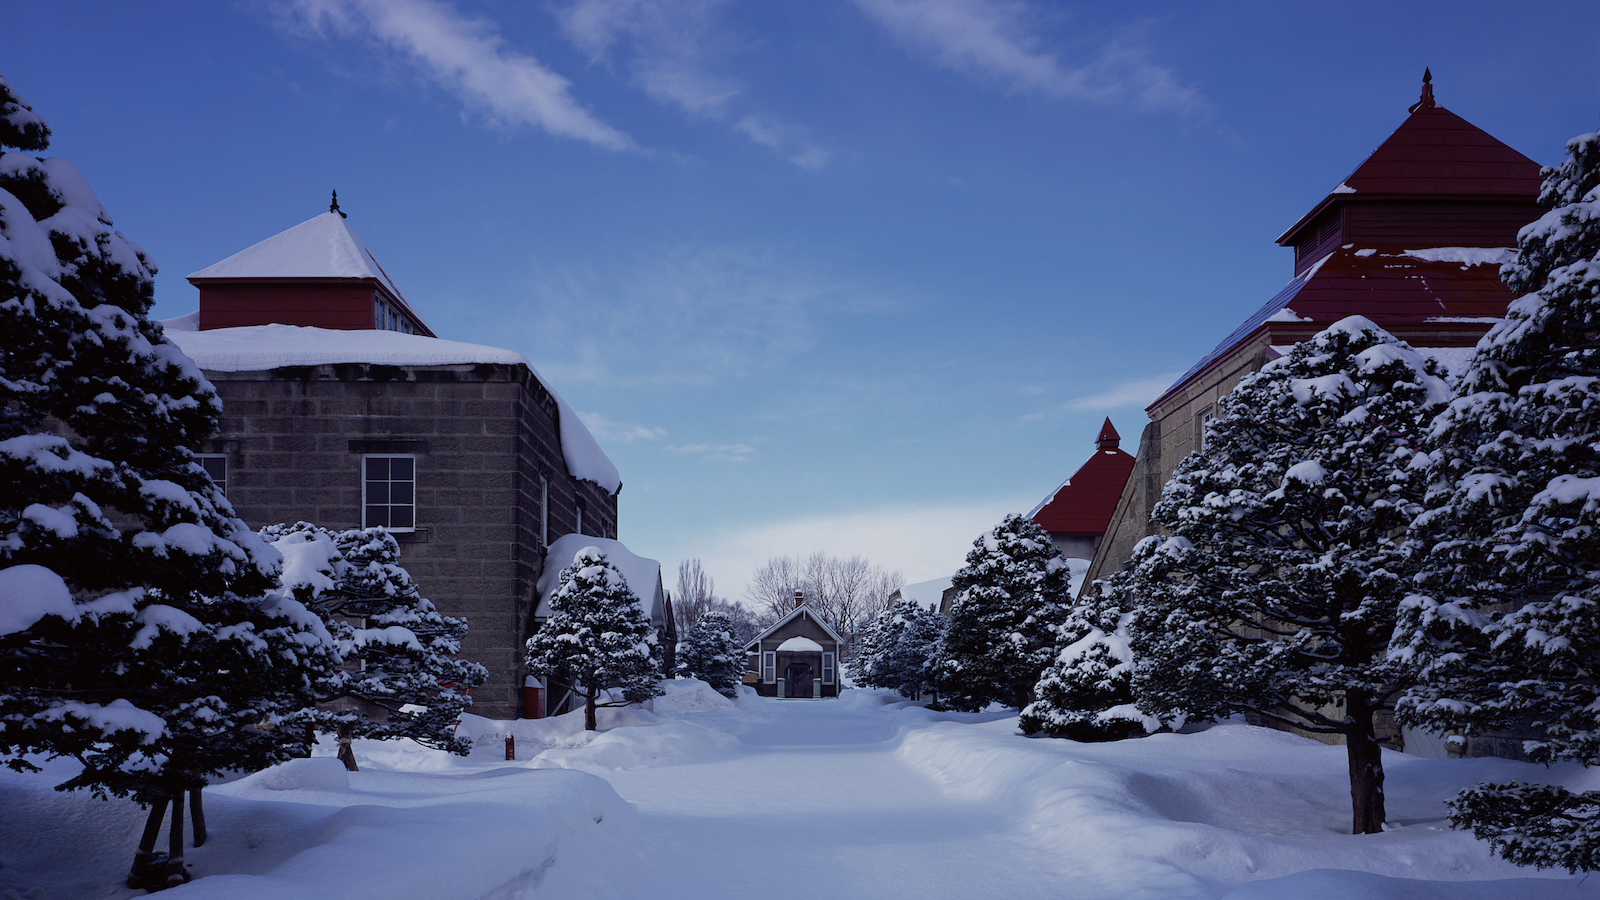 yoichi distillery in japan, covered in snow